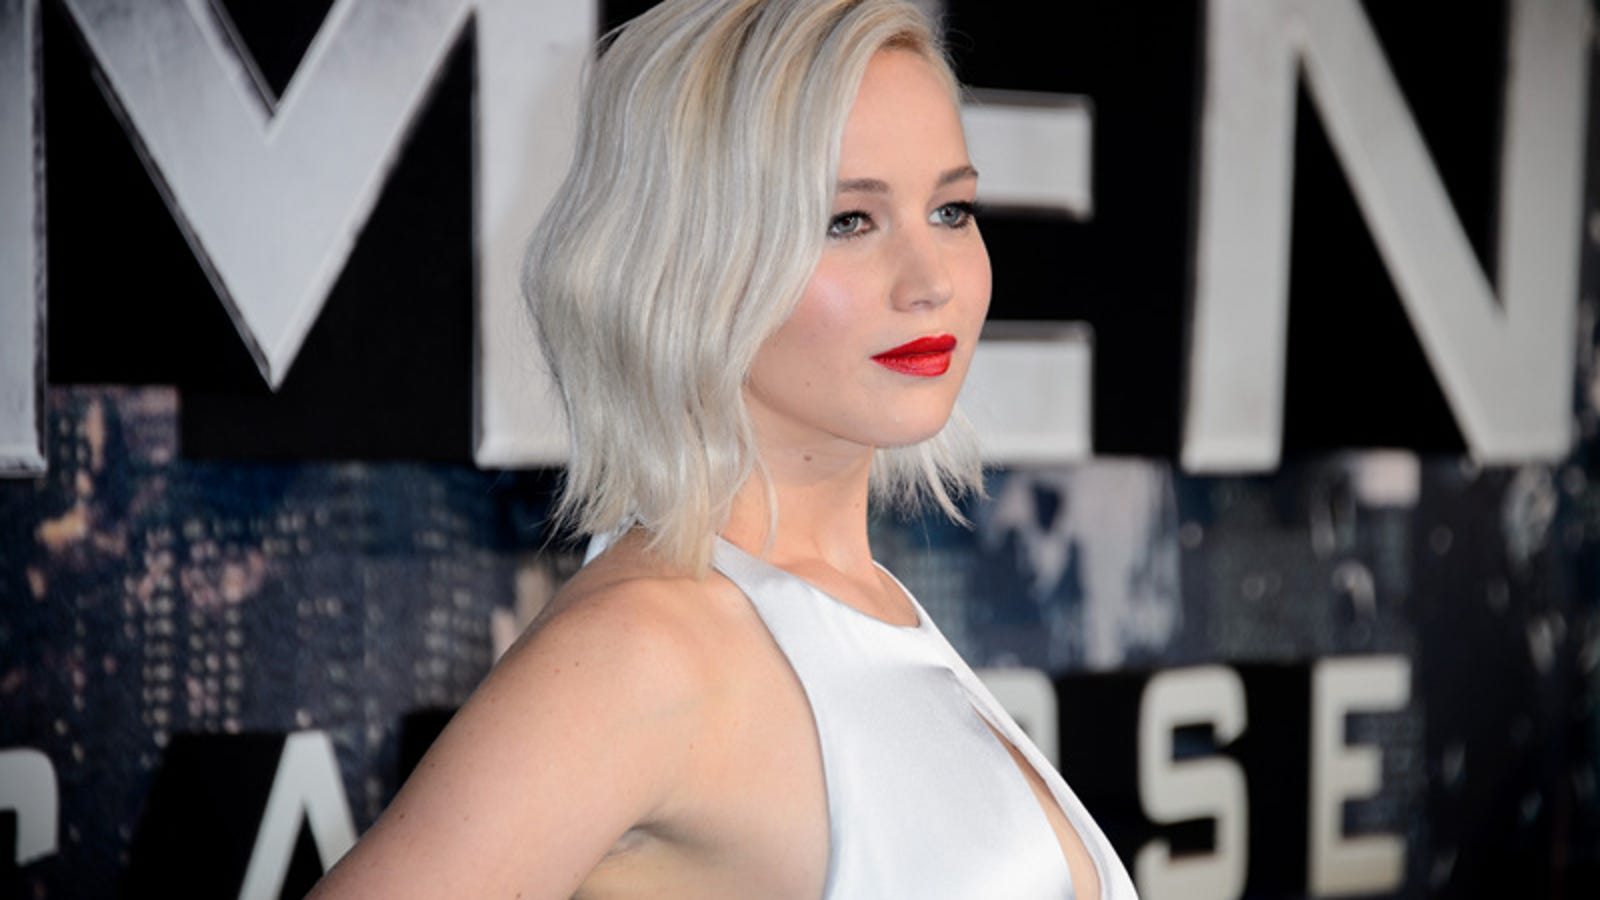 Hacker who leaked Jennifer Lawrence nude photos in The